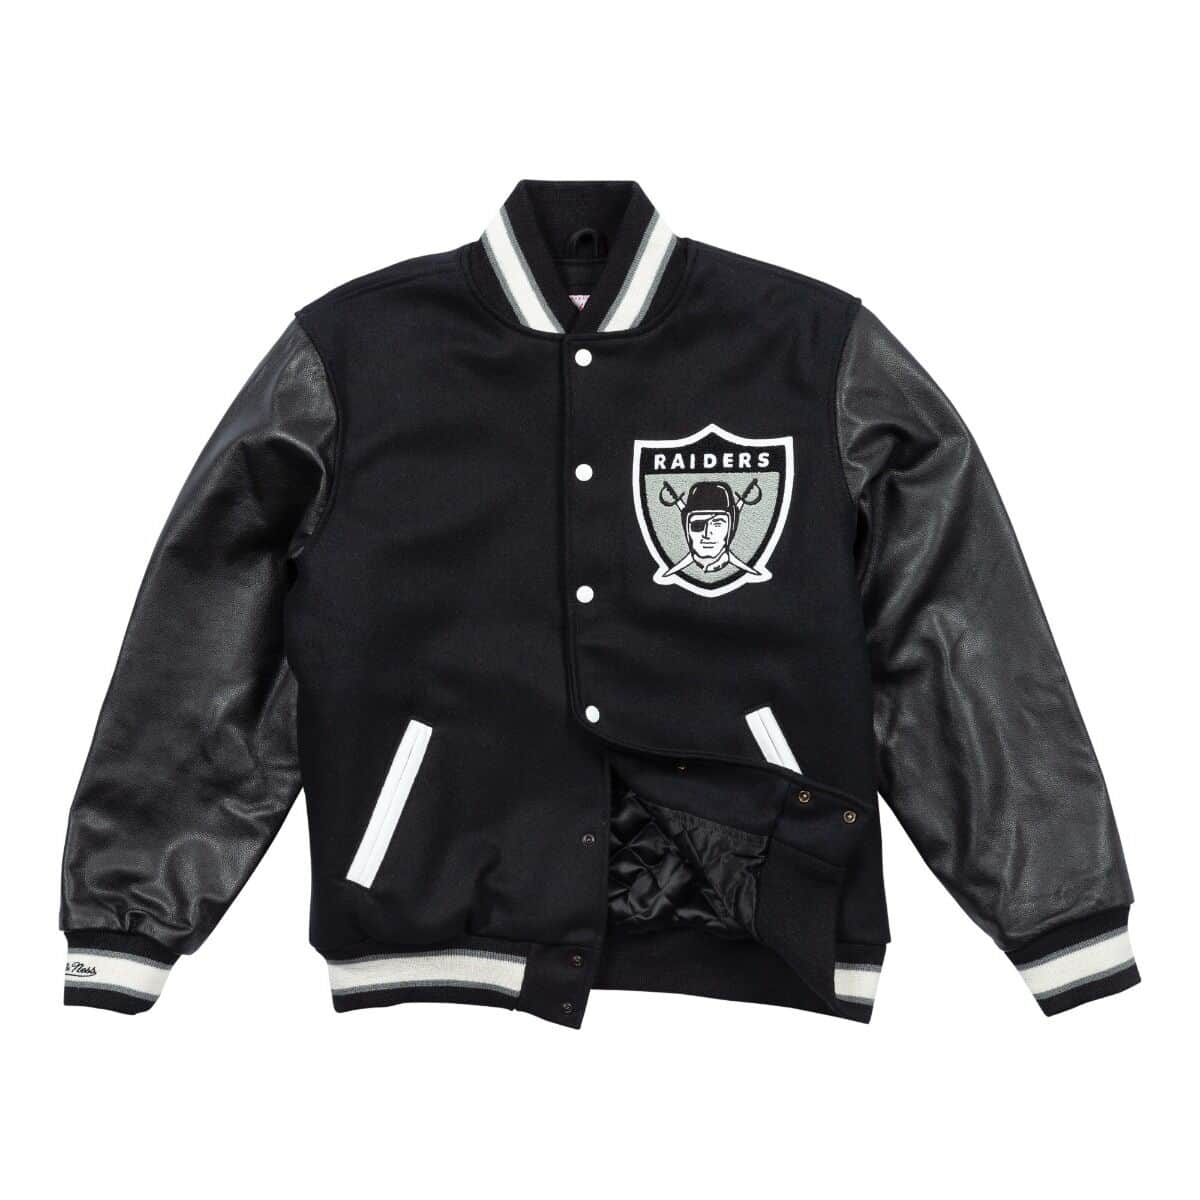 Authentic Wool Varsity Jacket Oakland Raiders